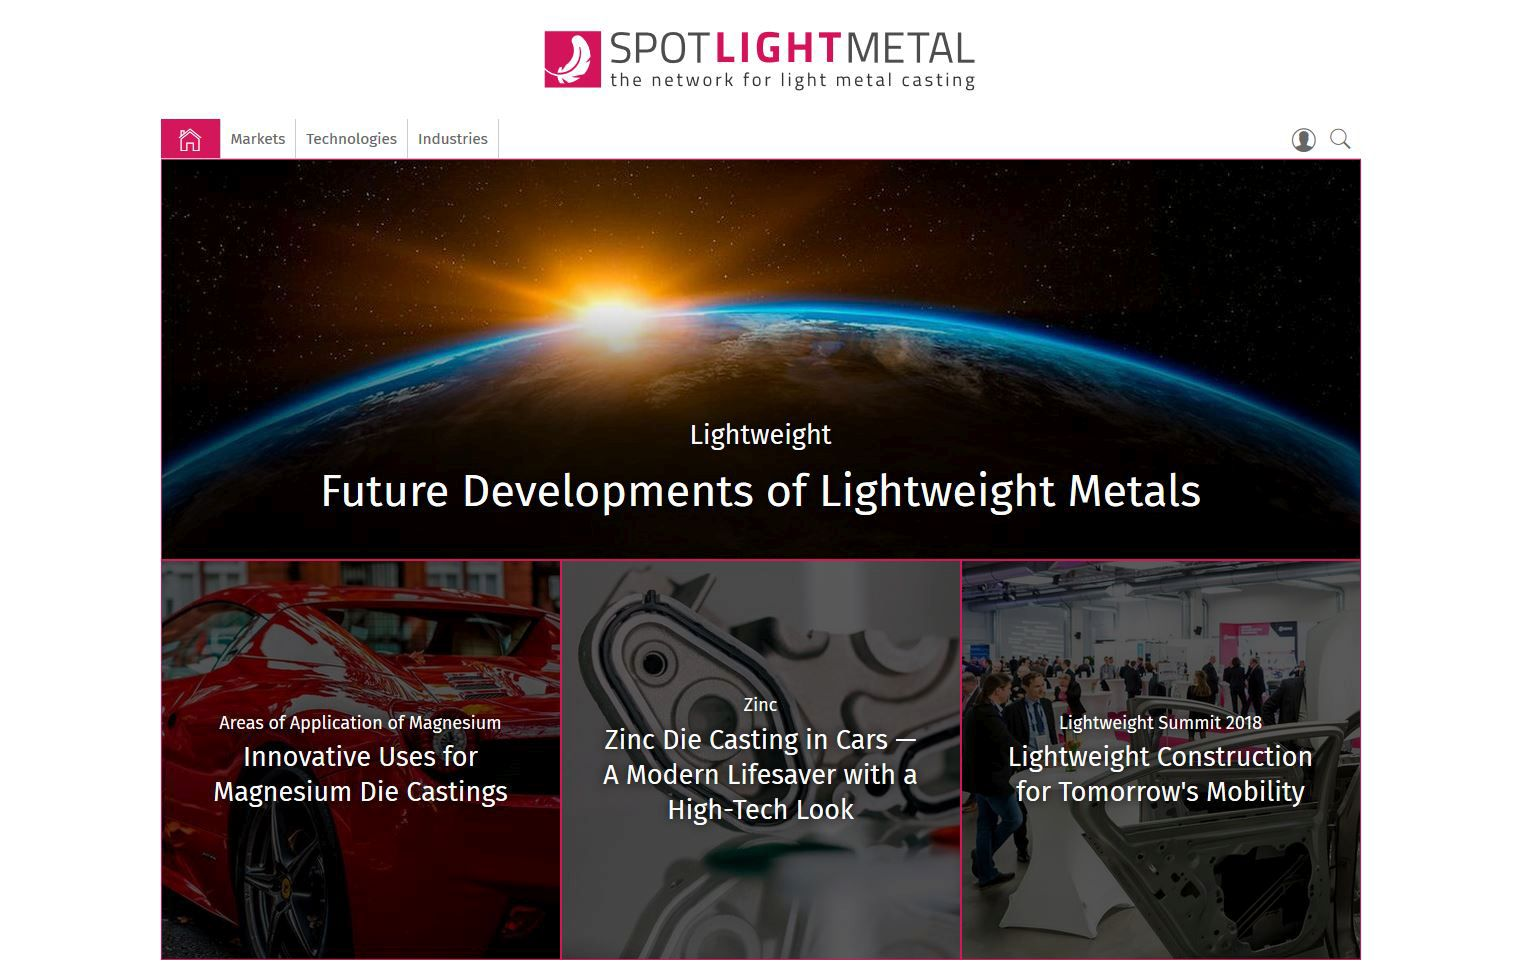 Spotlightmetal Screenshot